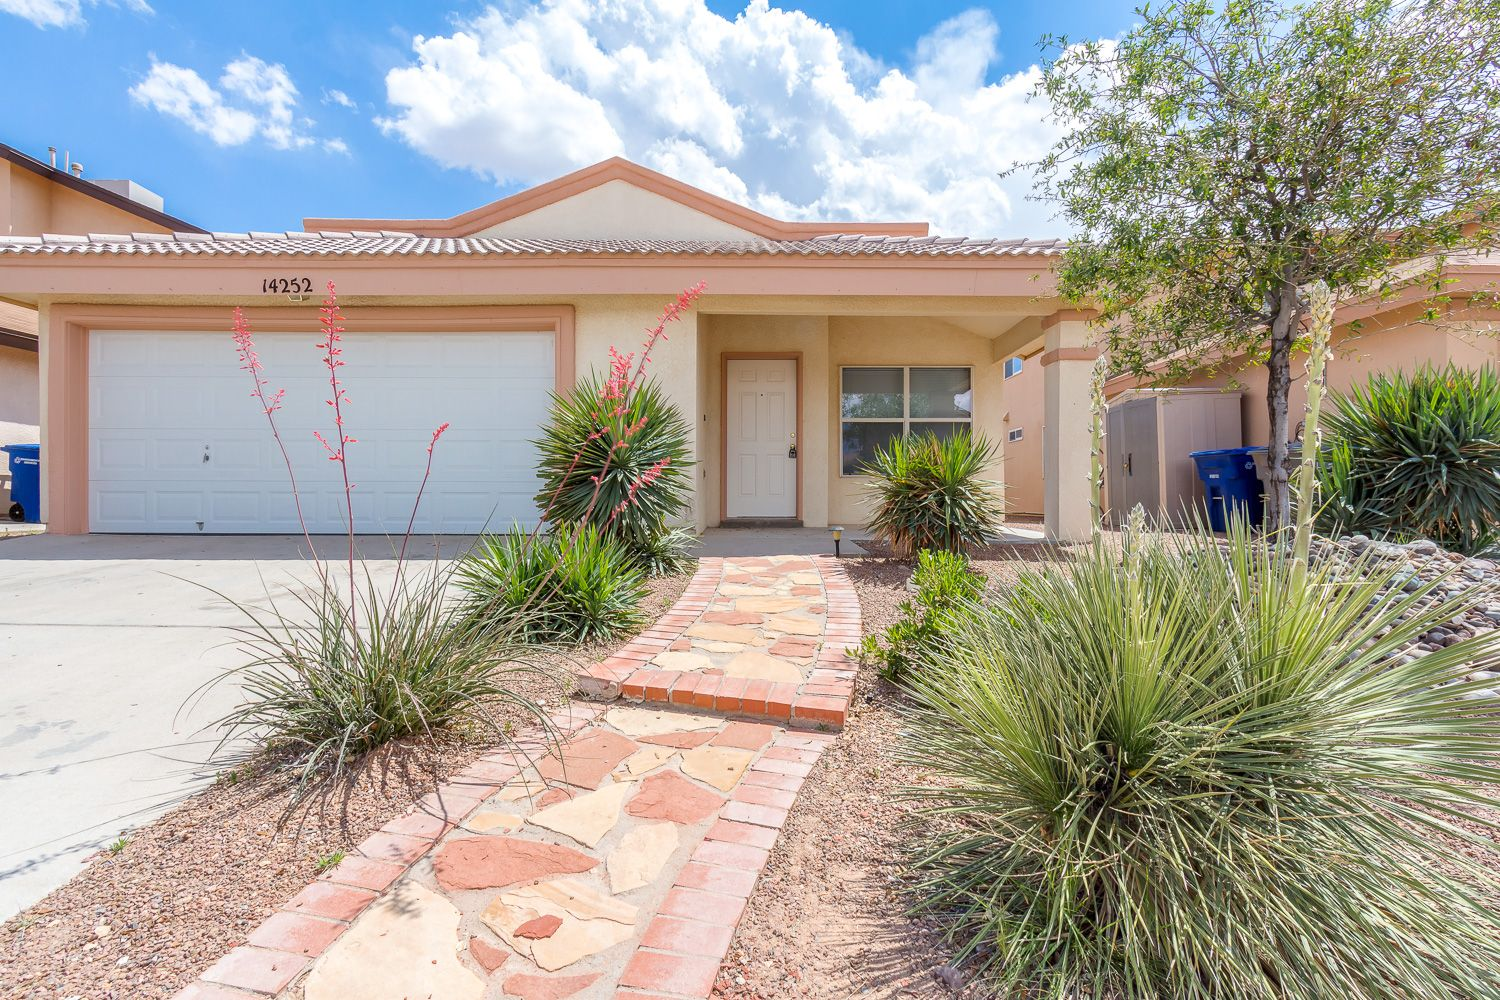 Beautiful Eastside Home For Rent 4 Bedrooms 2 Bath 14252 Spanish Point El Paso Tx 79938 Renting A House El Paso Rent